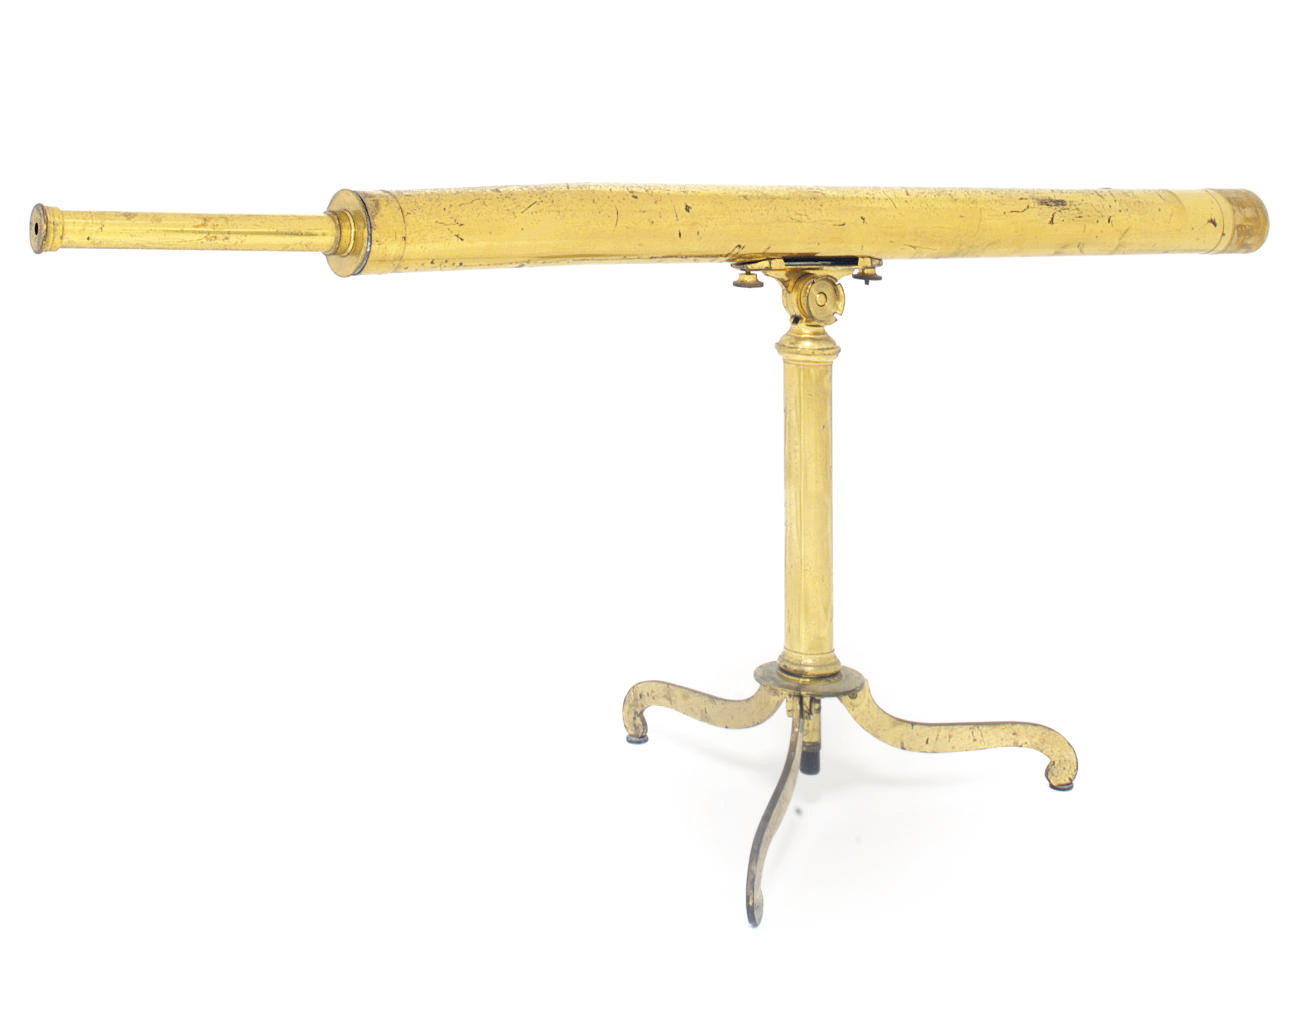 A lacquered brass telescope